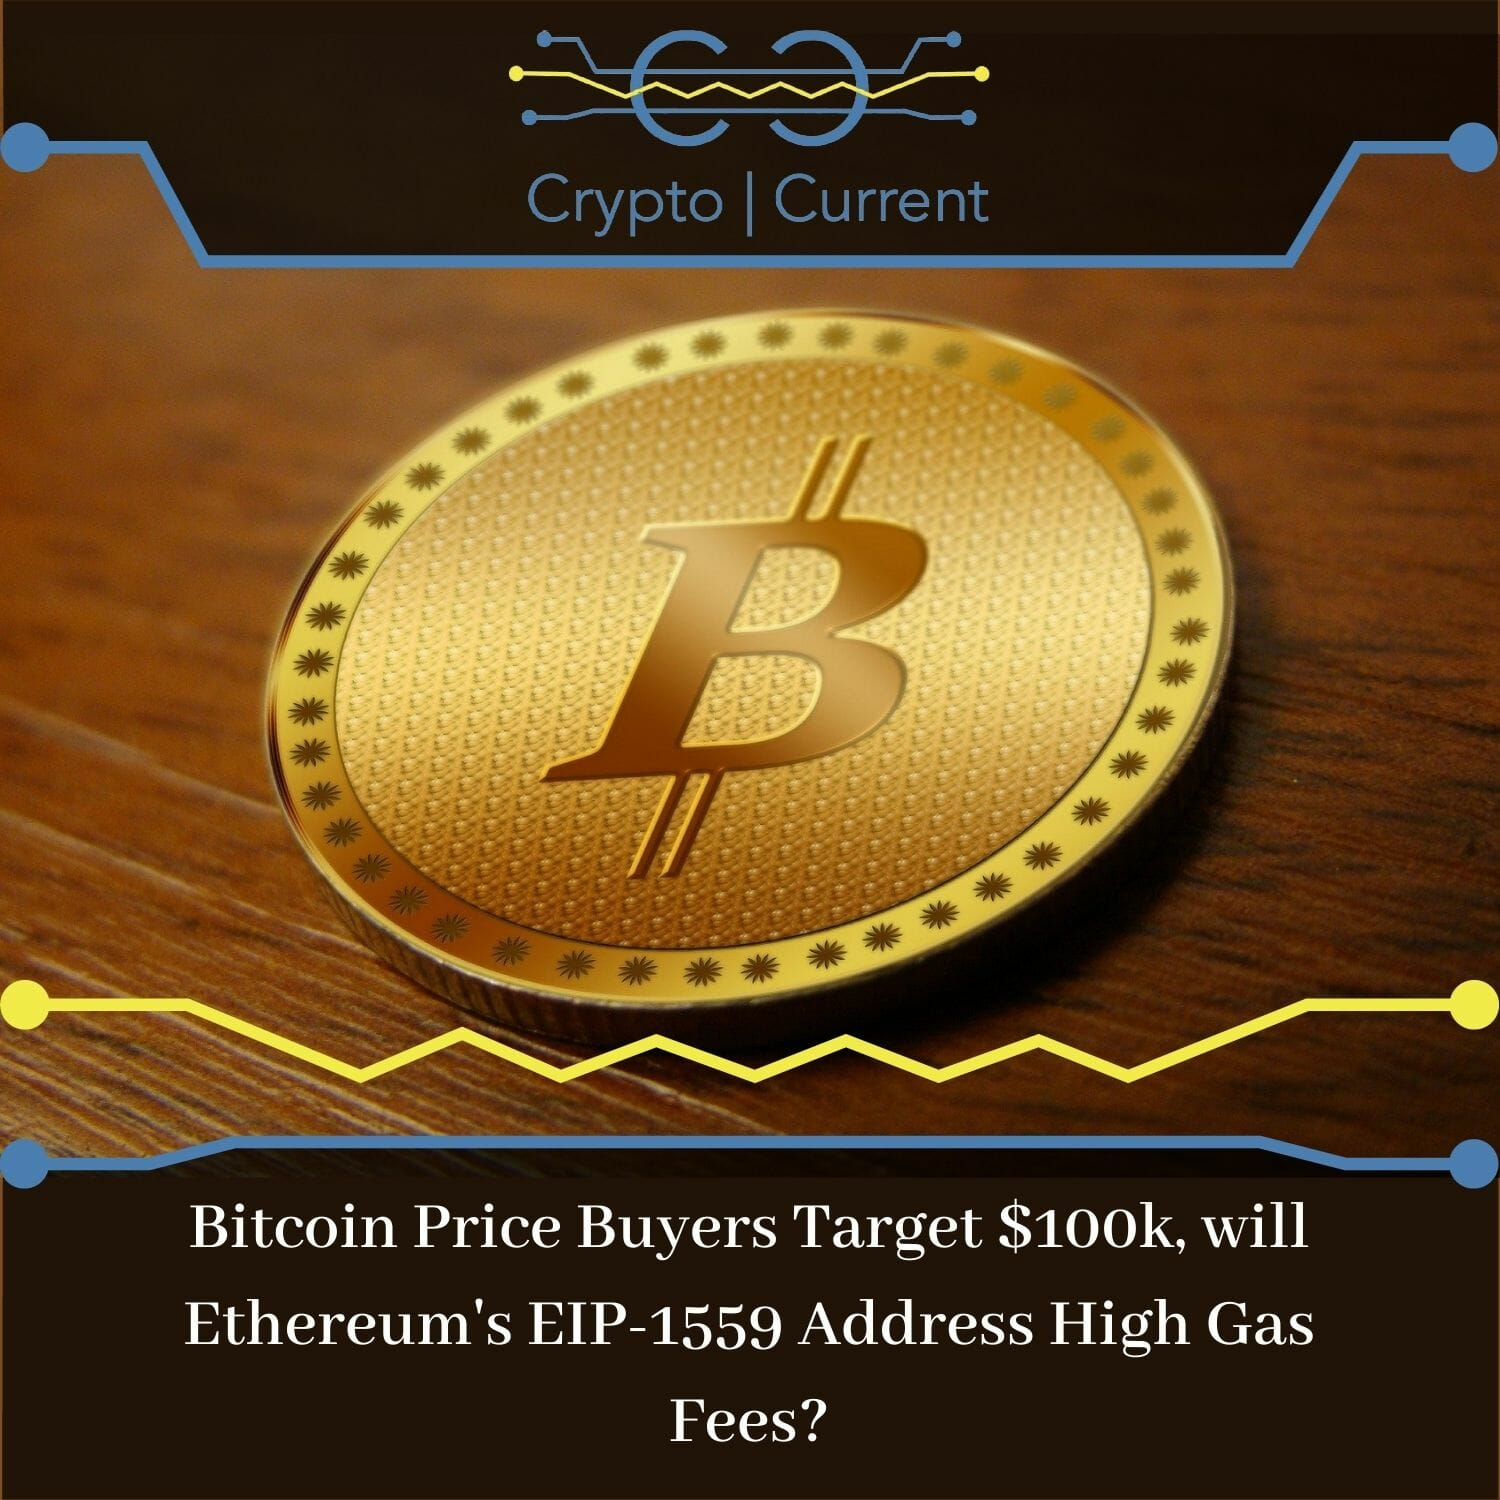 Bitcoin Price Buyers Target $100k, will Ethereum's EIP-1559 Address High Gas Fees_